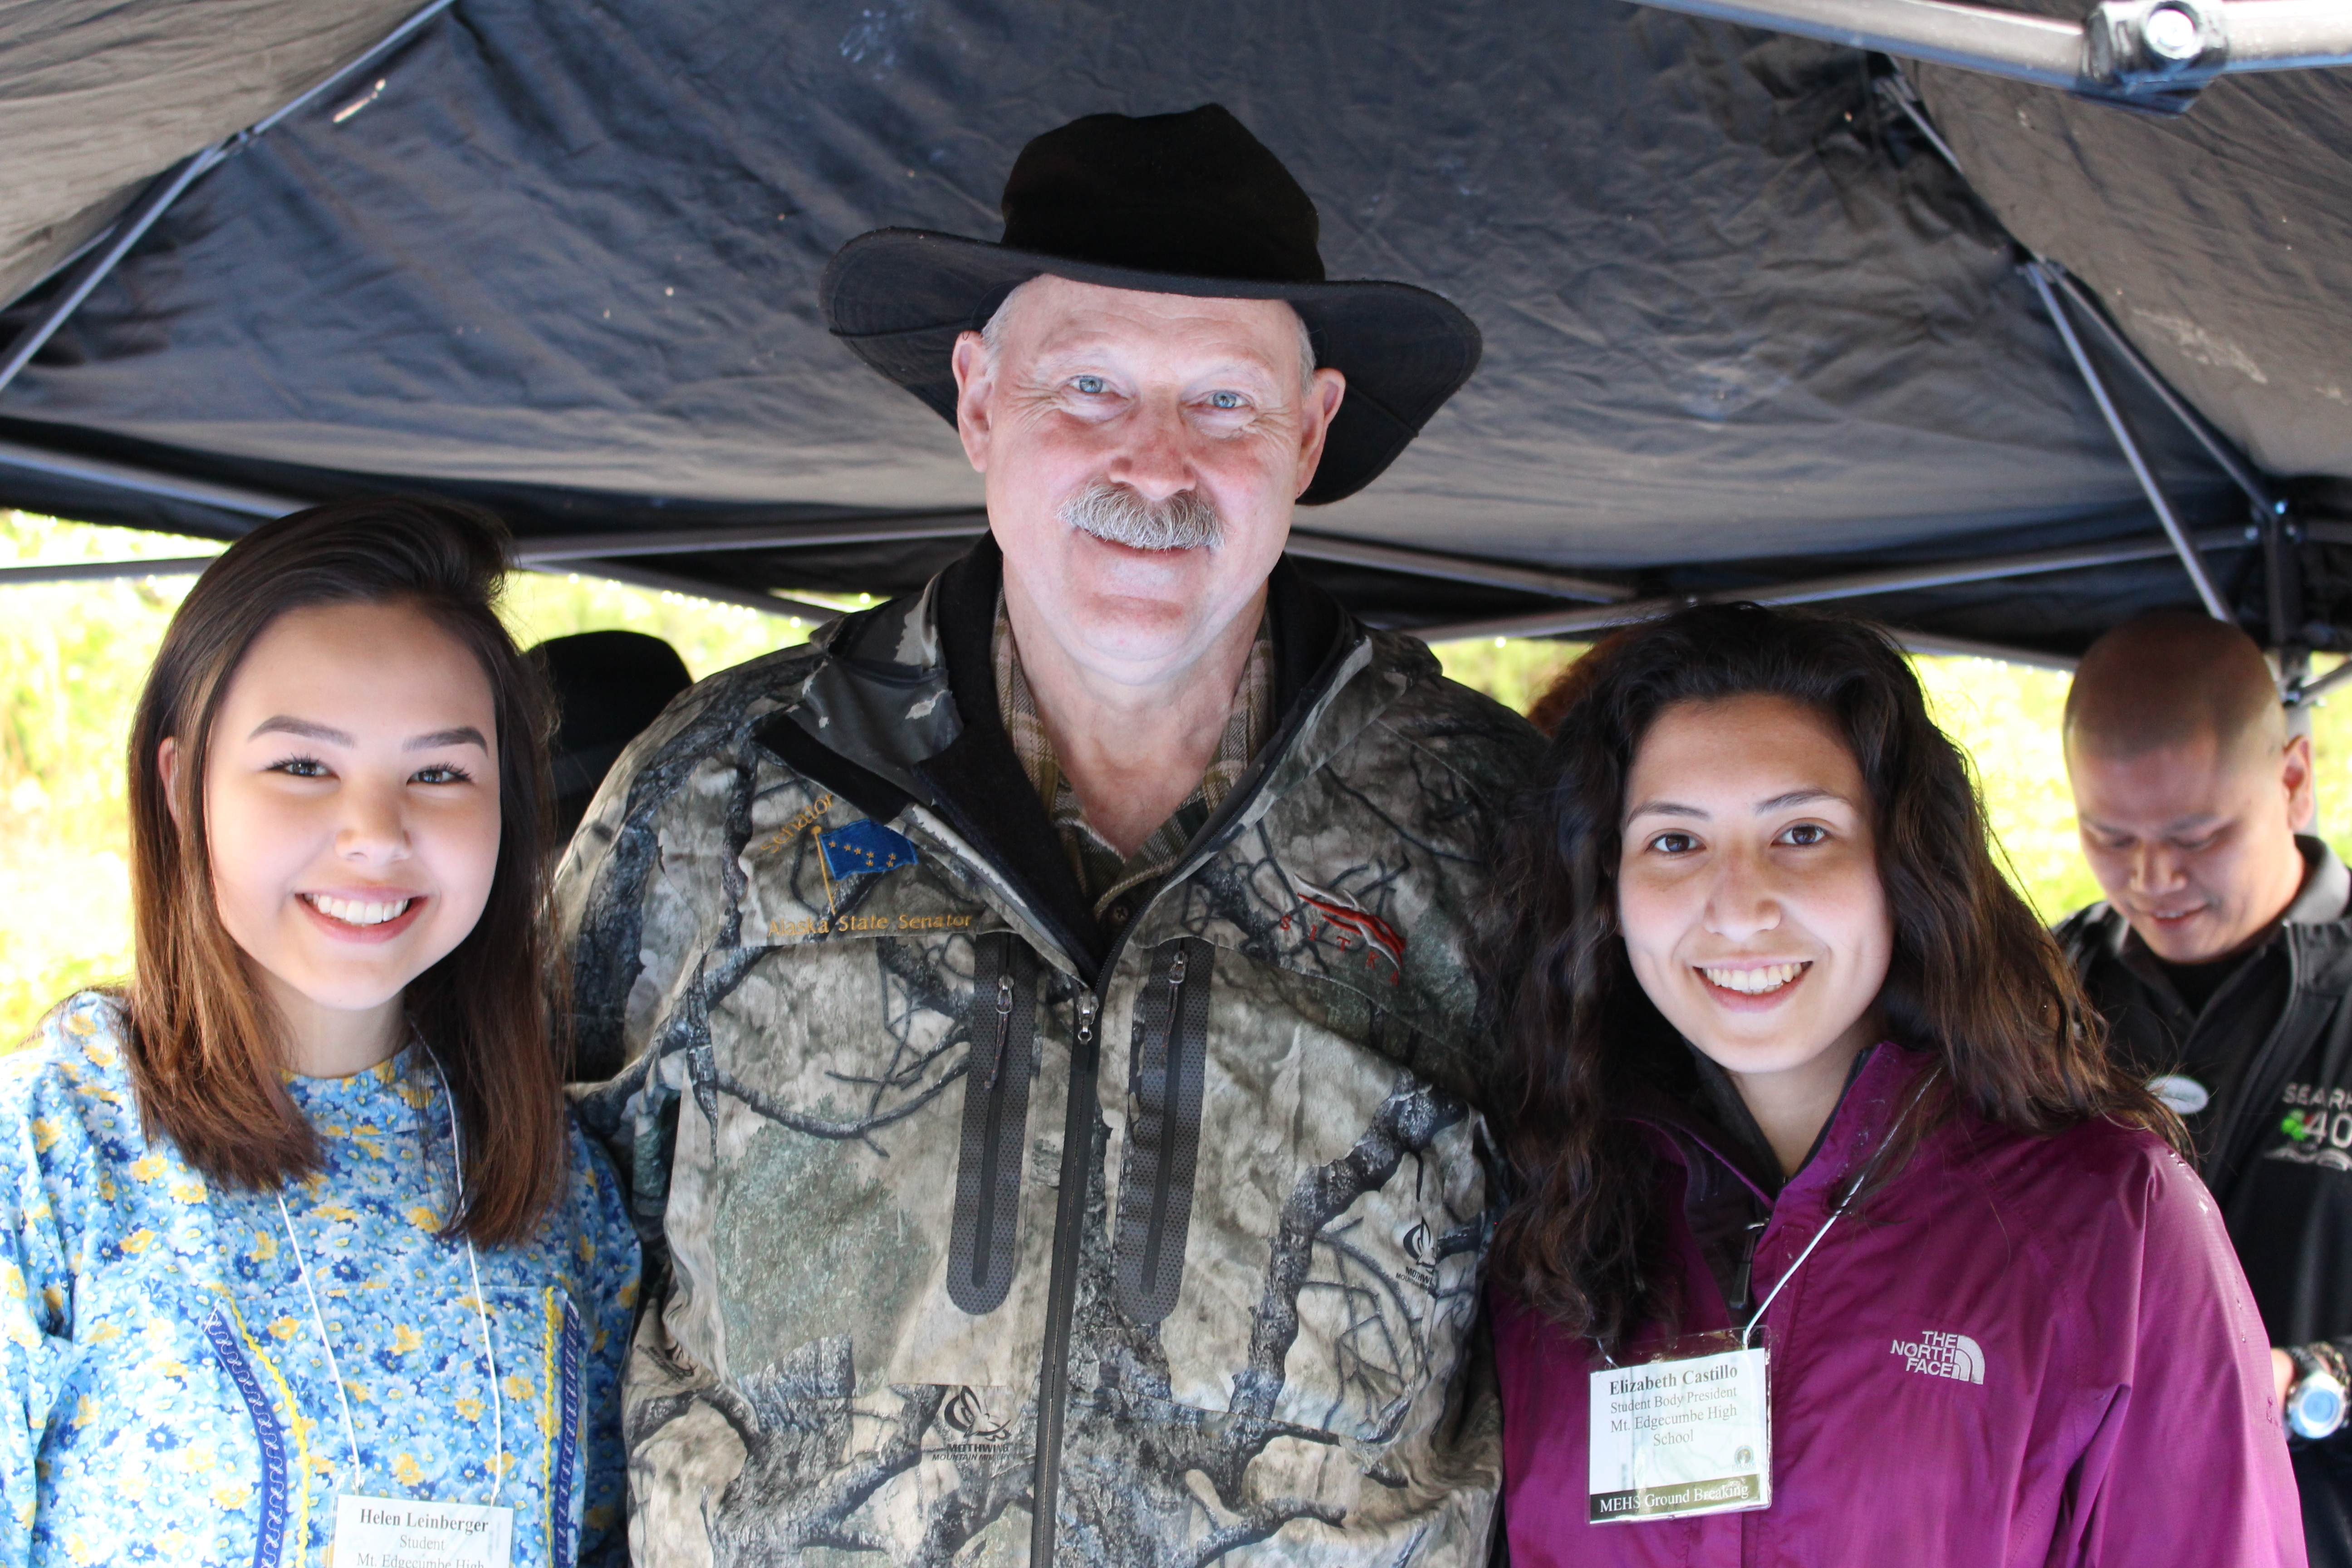 Senator Stedman pictured here with MEHS student Helen Leinberger and Elizabeth Castillo MEHS Student Body President